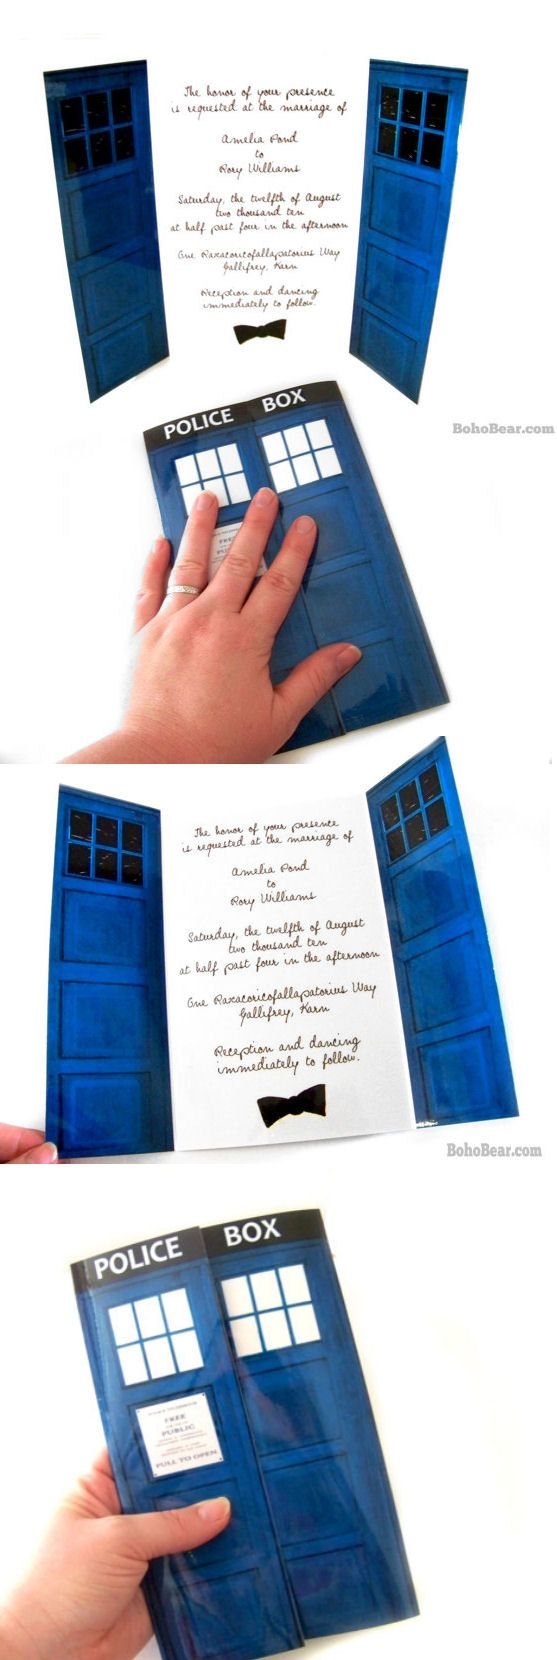 Doctor Who Inspired Wedding Invitations, Blue Police Box Invites for Geek WeddingsAdorable Geeky, Geek Wedding, Blue Police, Wedding Invitations, Doctors Who, Doctor Who Wedding, Dr. Who, Ideas Doctors, Geeky Wedding